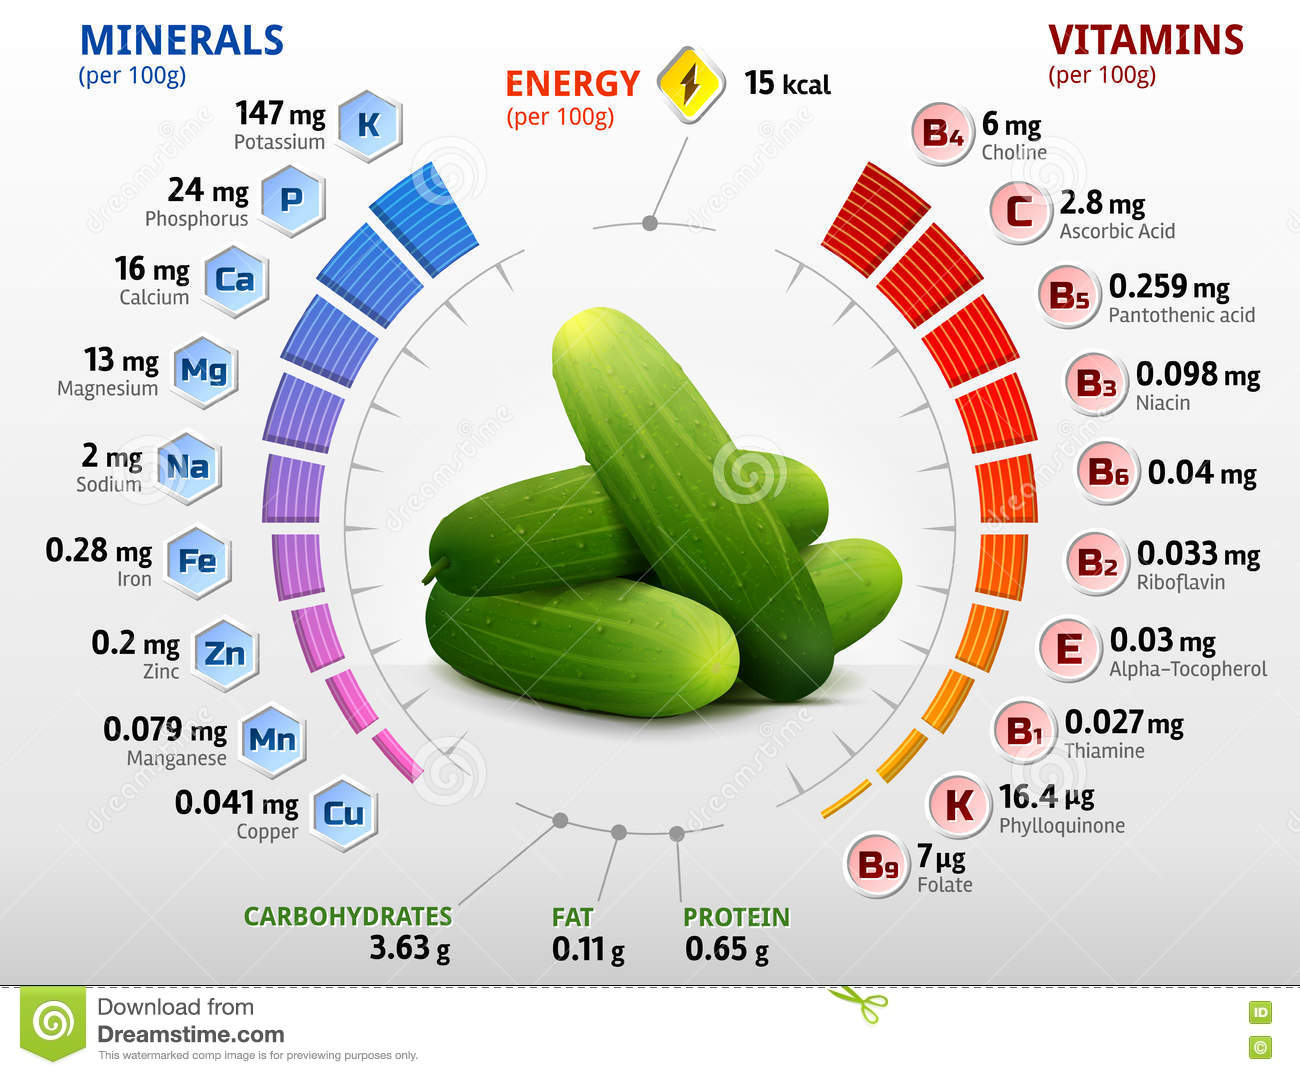 What are the vitamins in cucumbers and tomatoes? 11